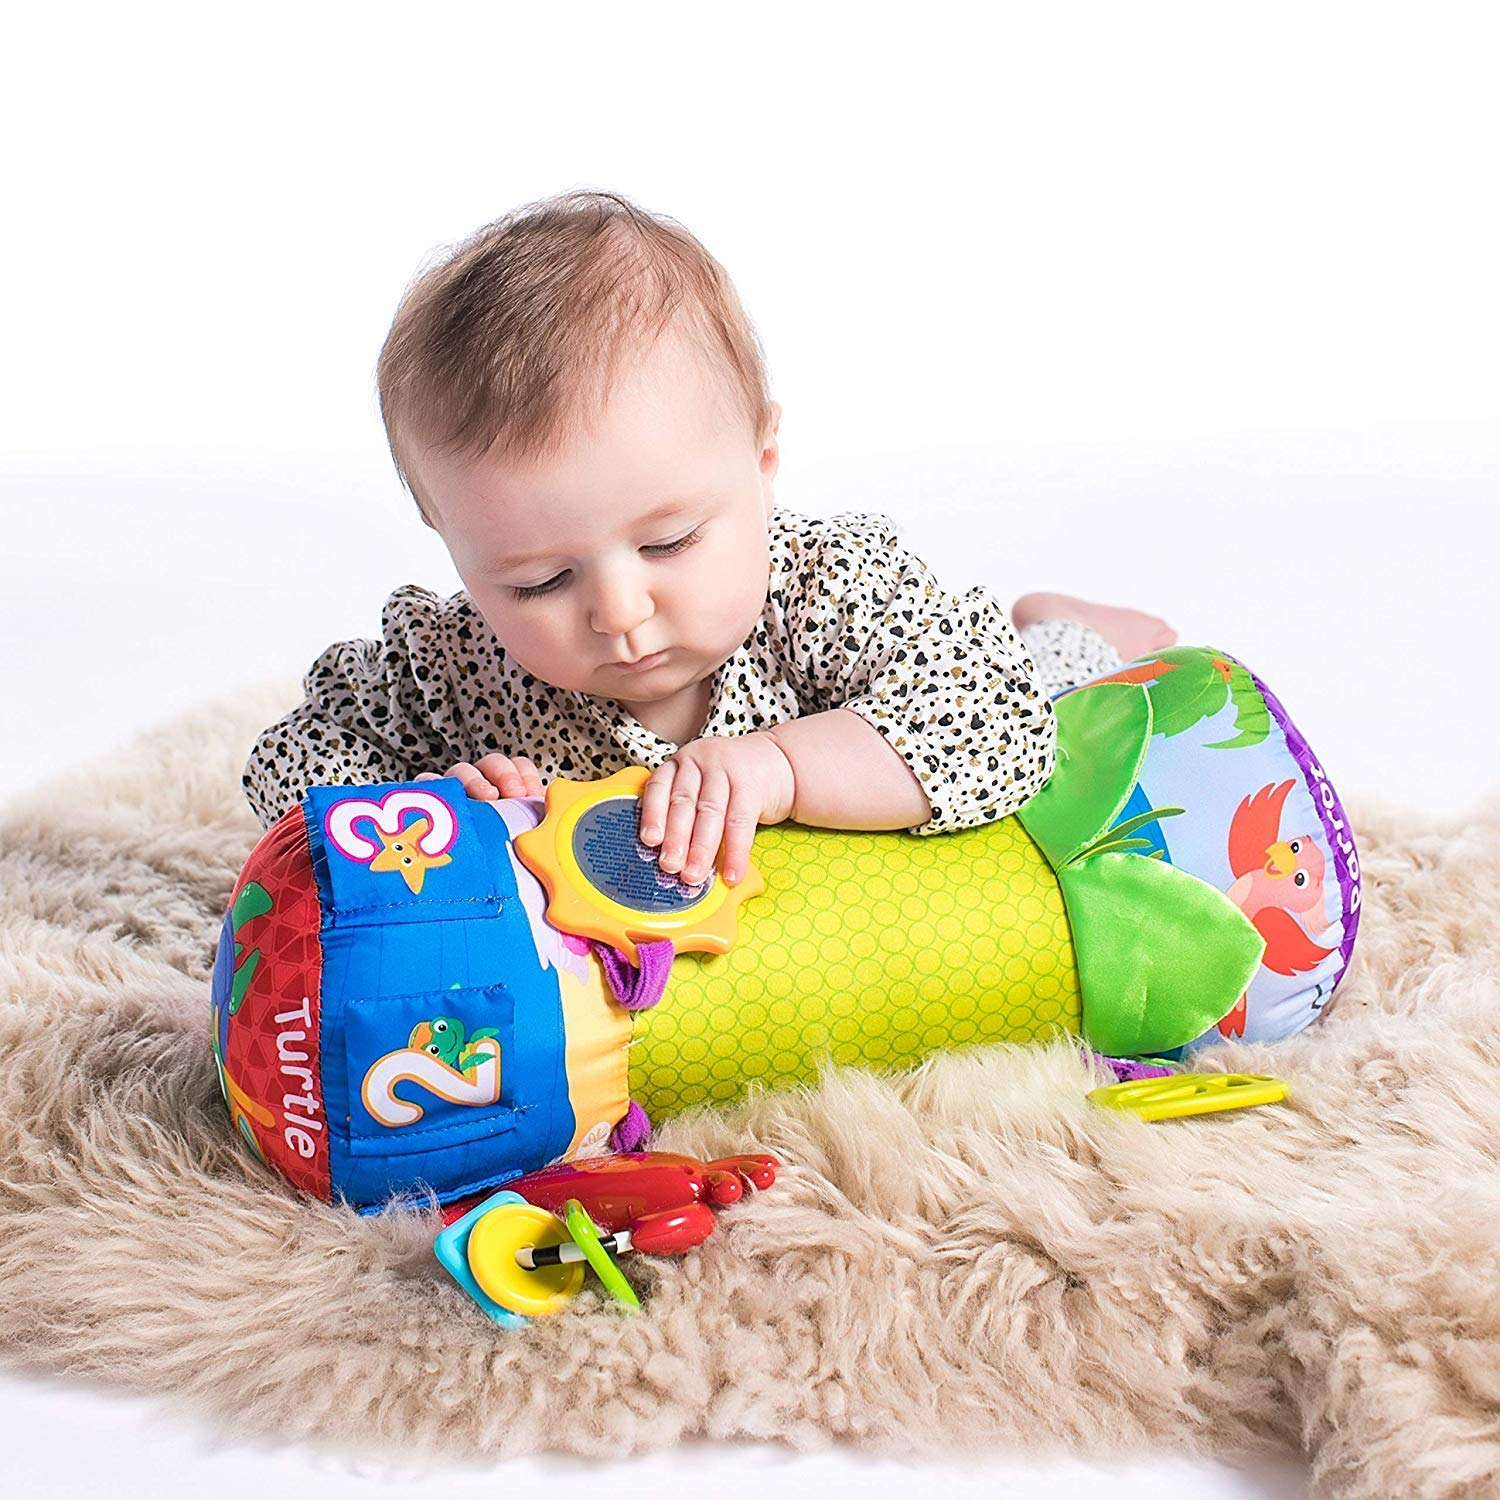 Baby Rhythm Of The Reef Prop Pillow Kids Tummy Time Activity With Toy ( Month 3+)